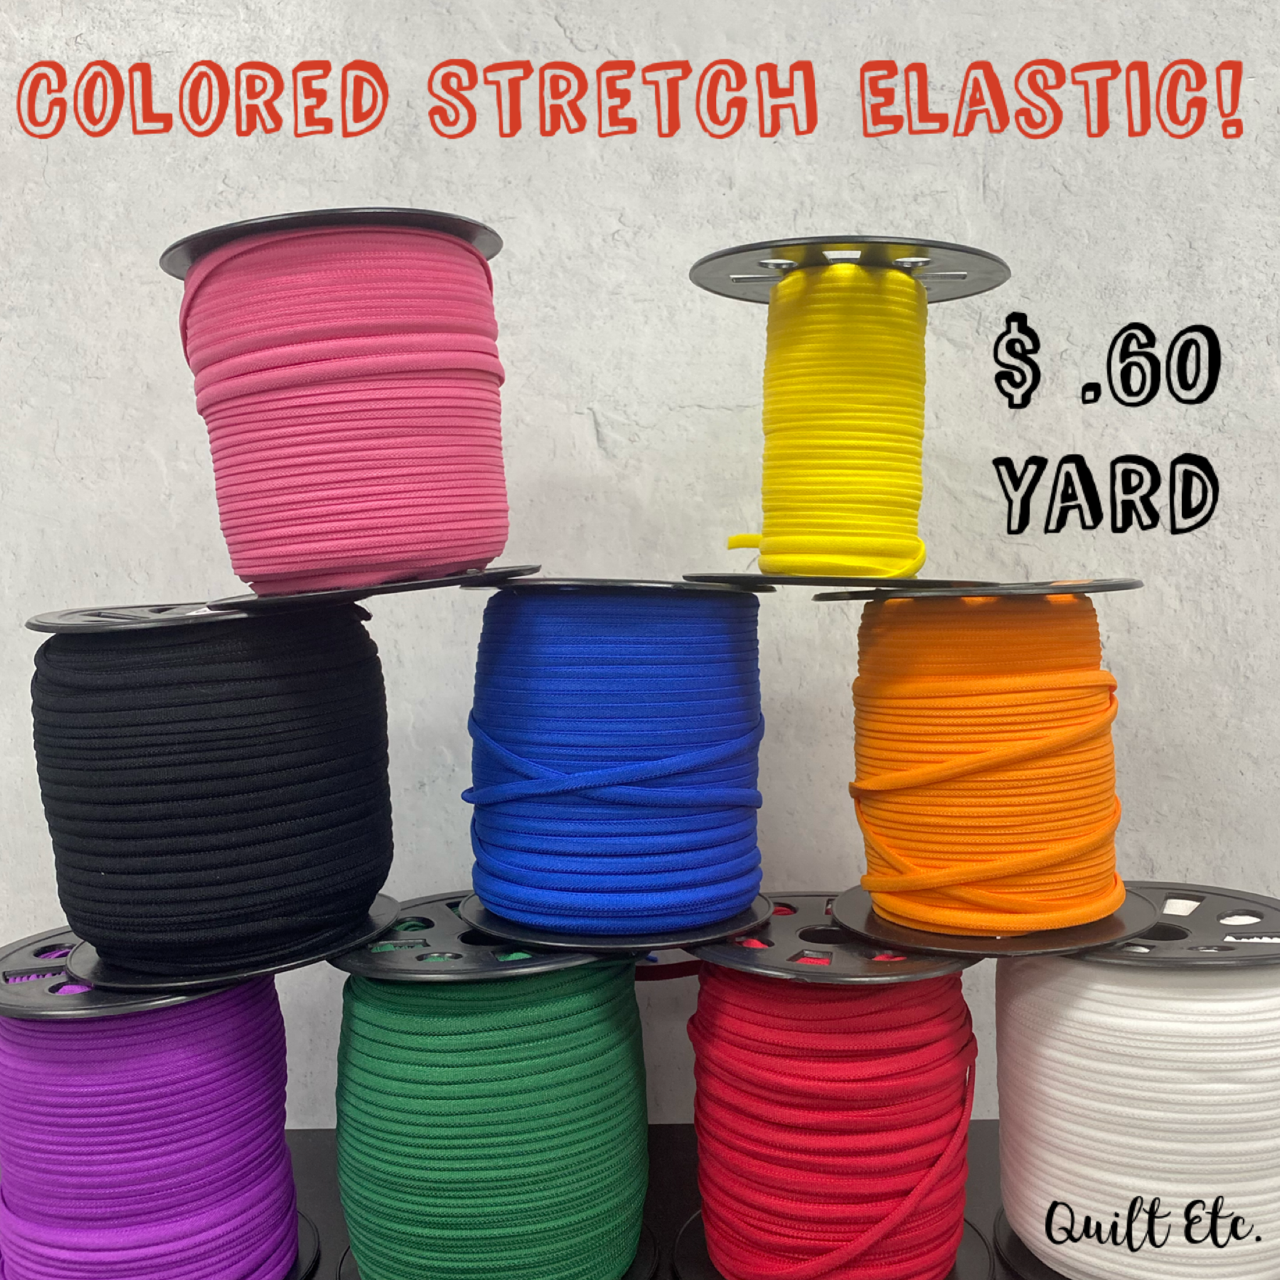 Colored Banded Stretch Elastic 1/6